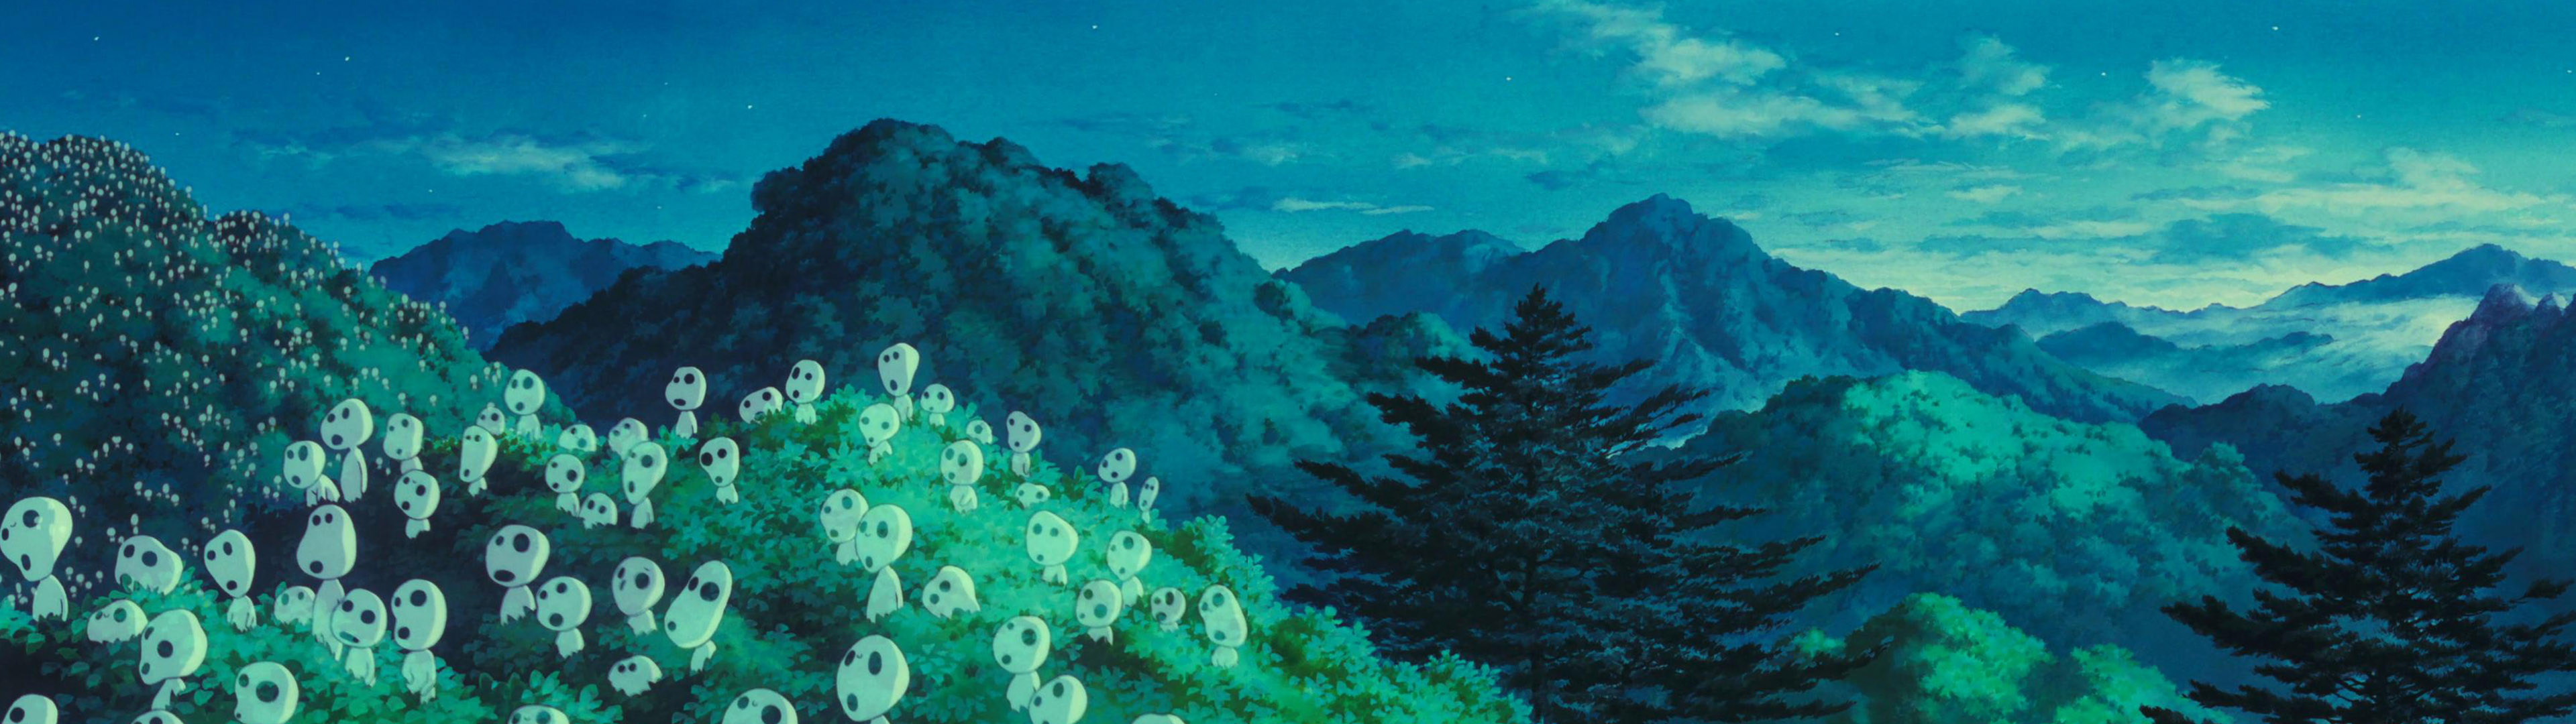 princess mononoke kodama background desktop wallpaper